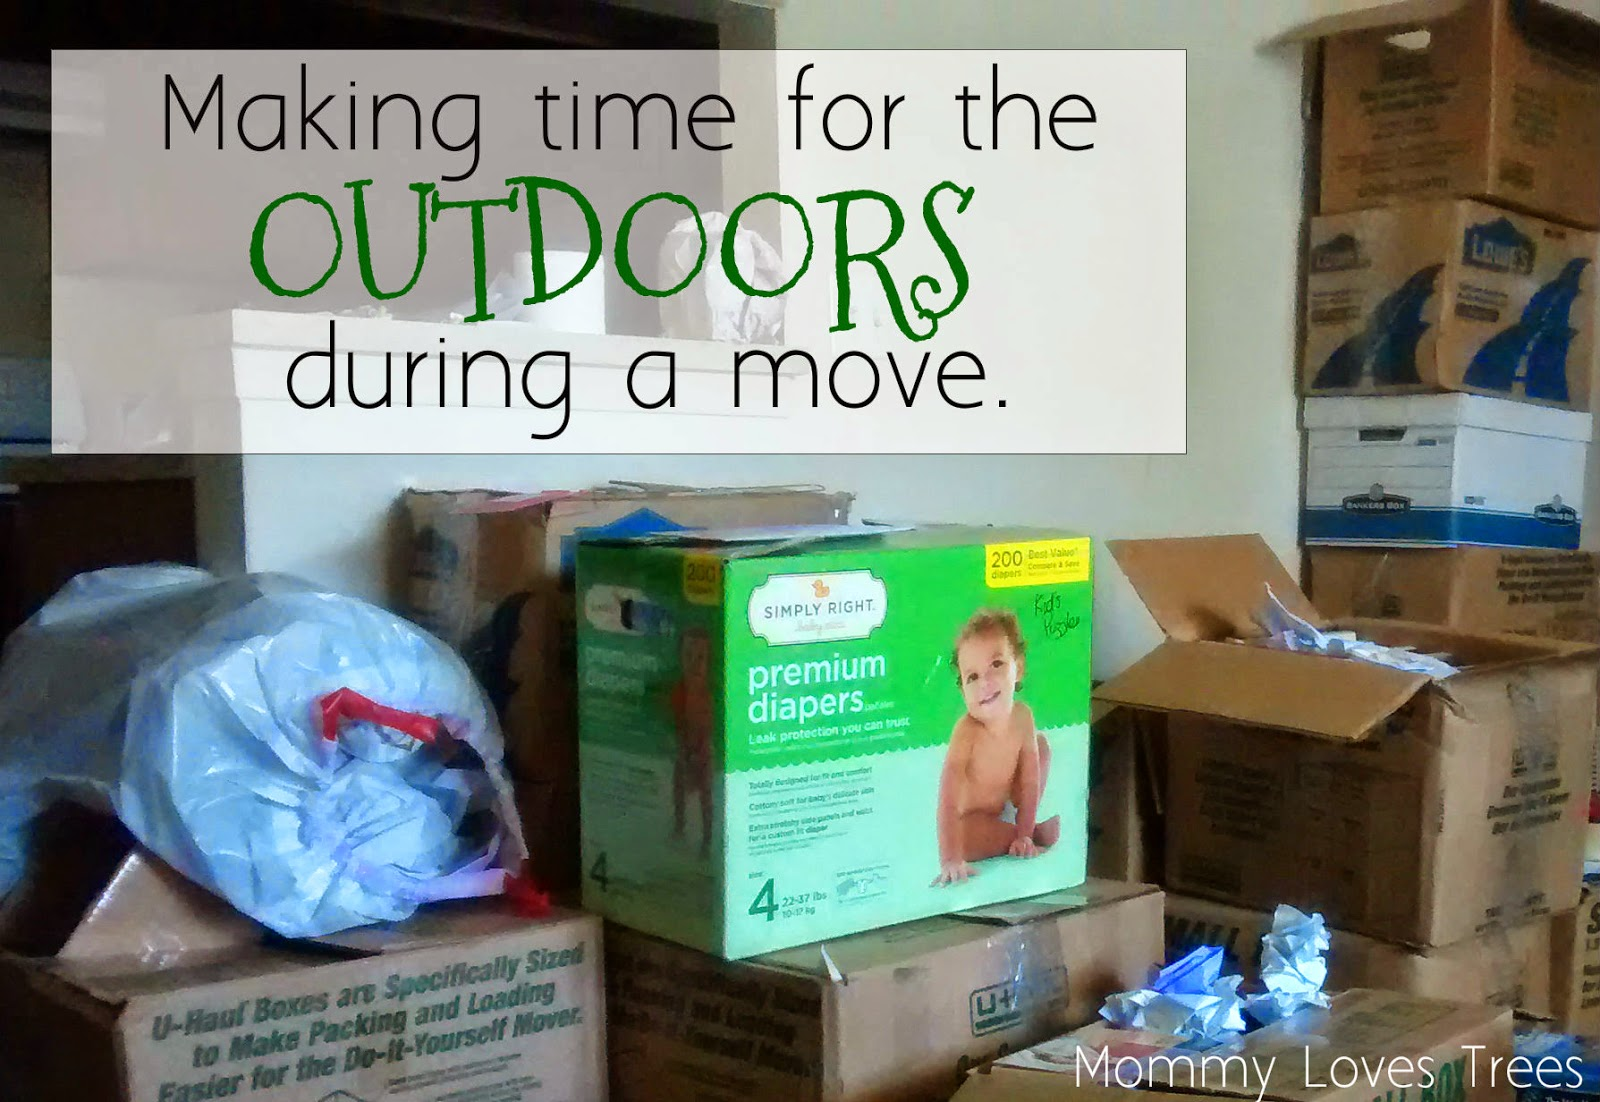 Making time for the outdoors during a move.